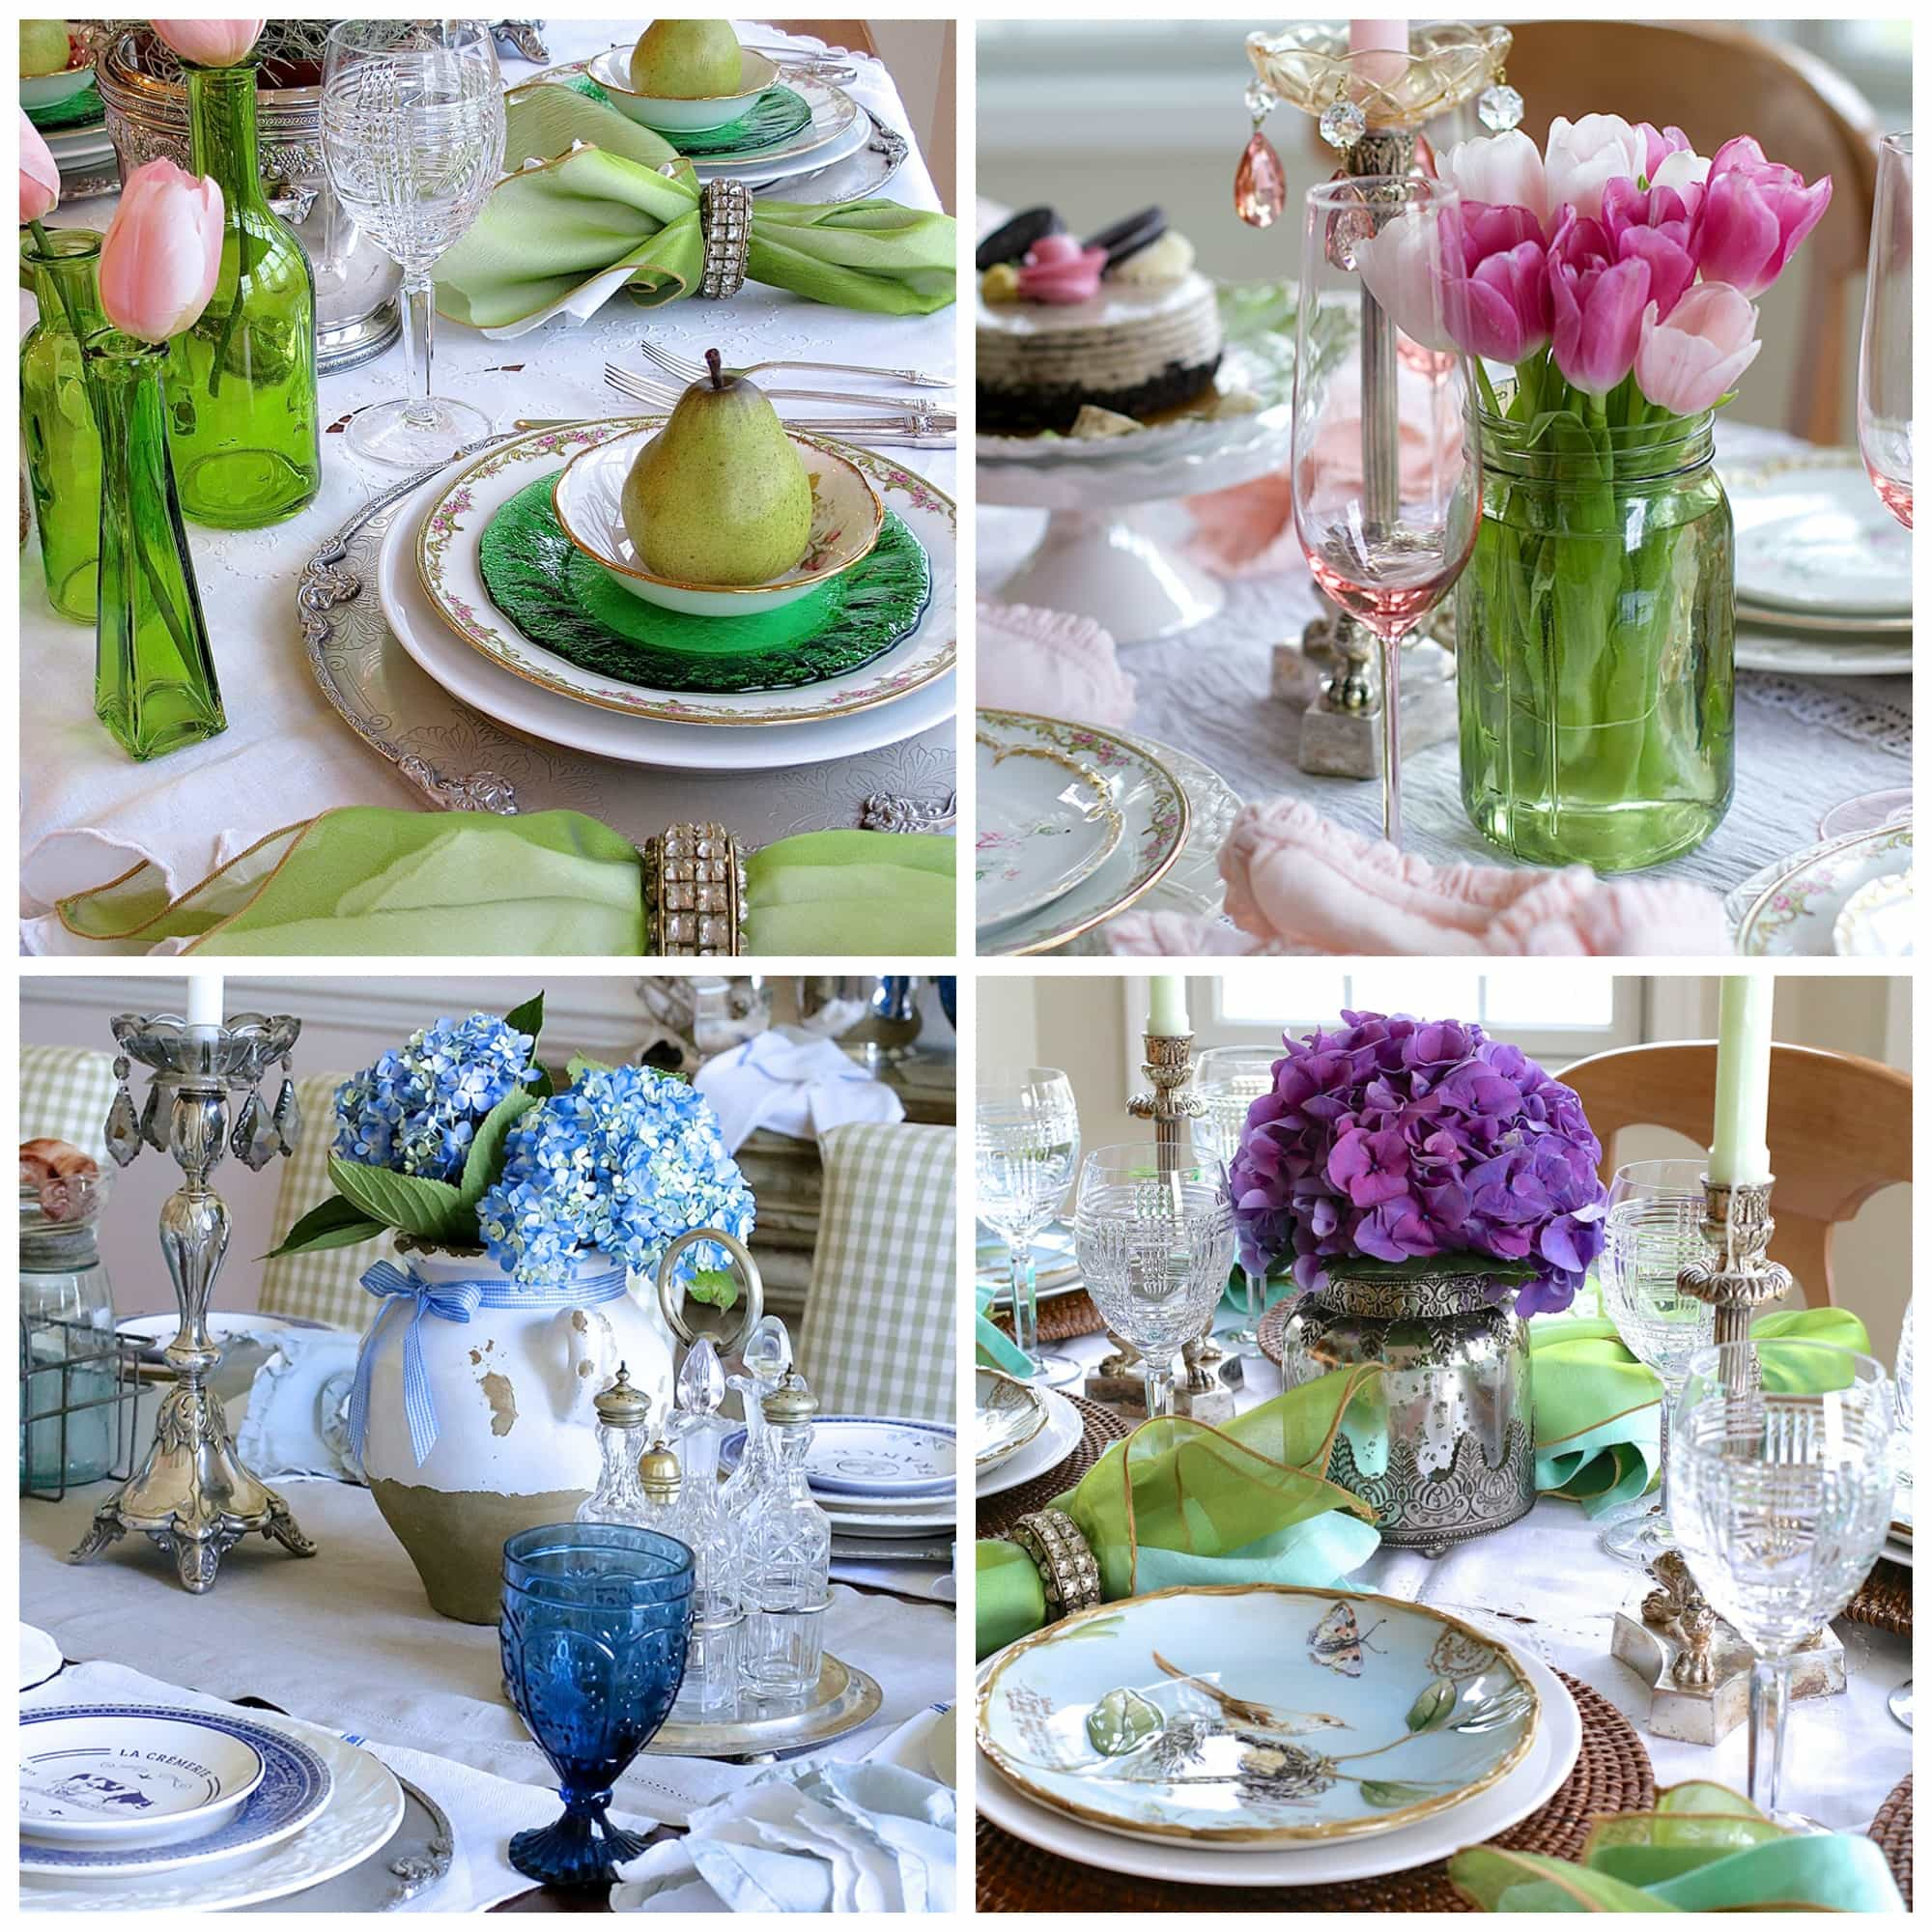 Spring Wedding Centerpiece Ideas: Spring Centerpieces And Seasonal Table Decoration Ideas